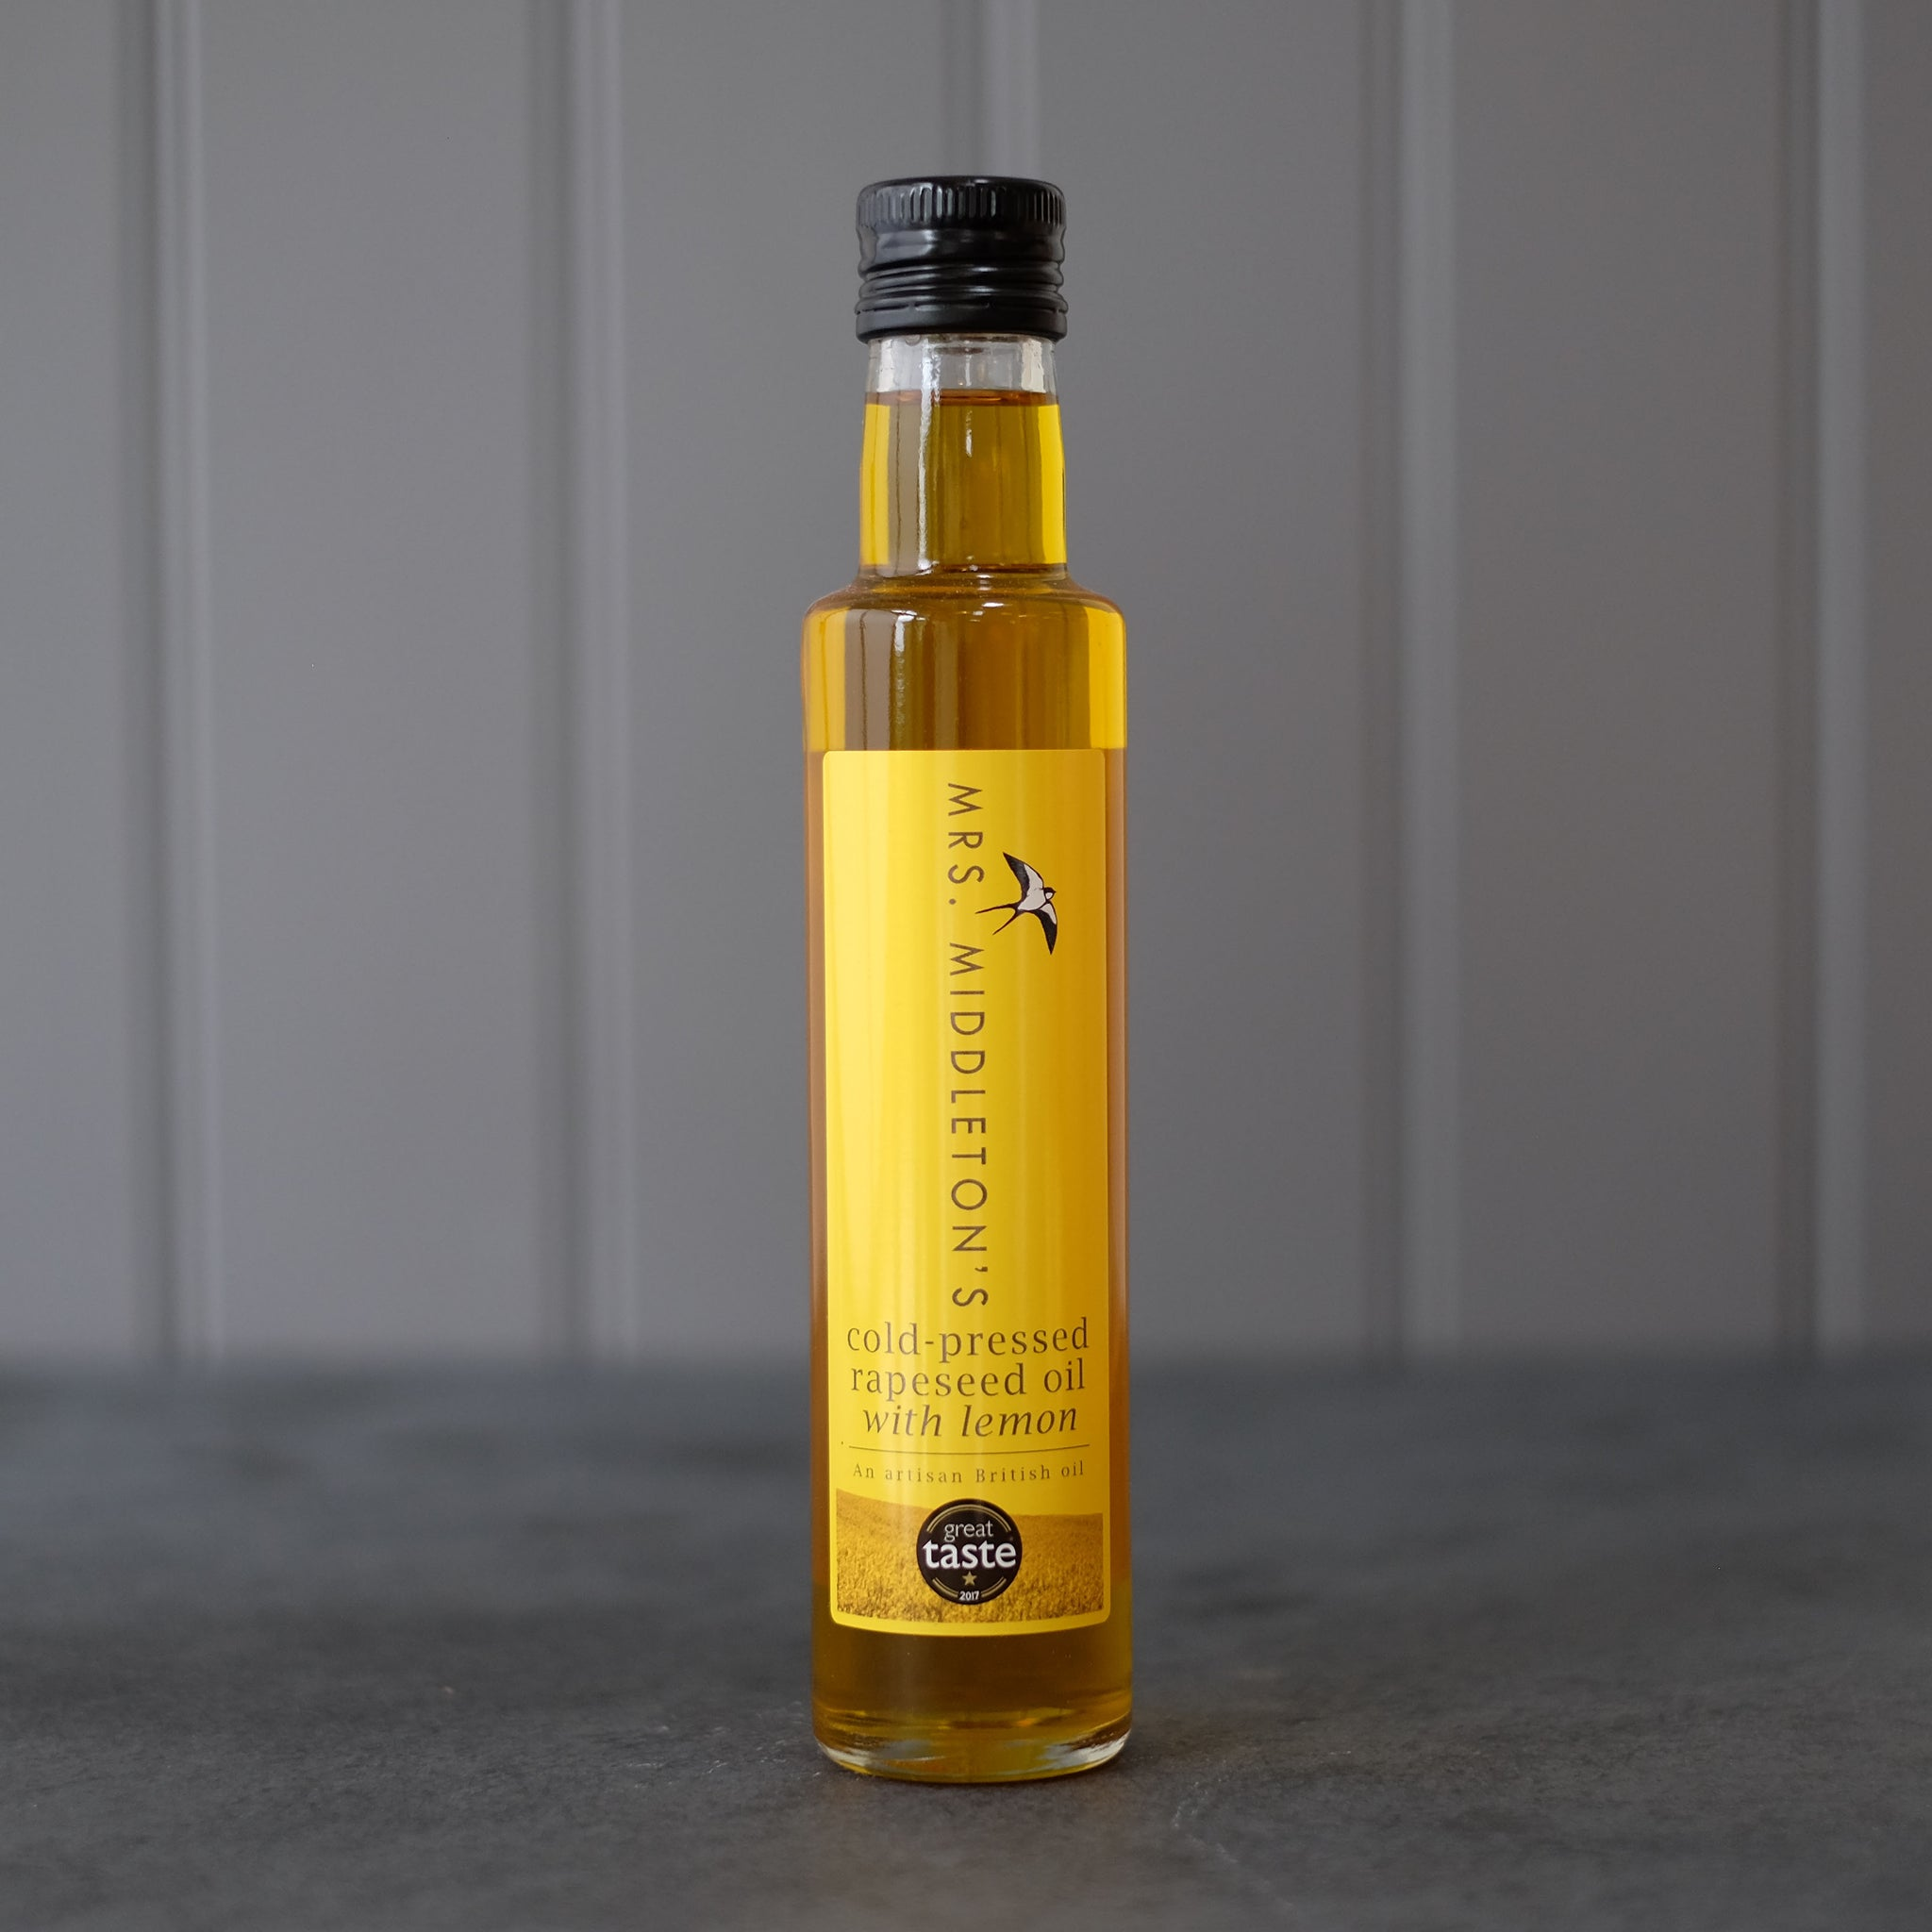 Cold-Pressed Rapeseed Oil with Lemon